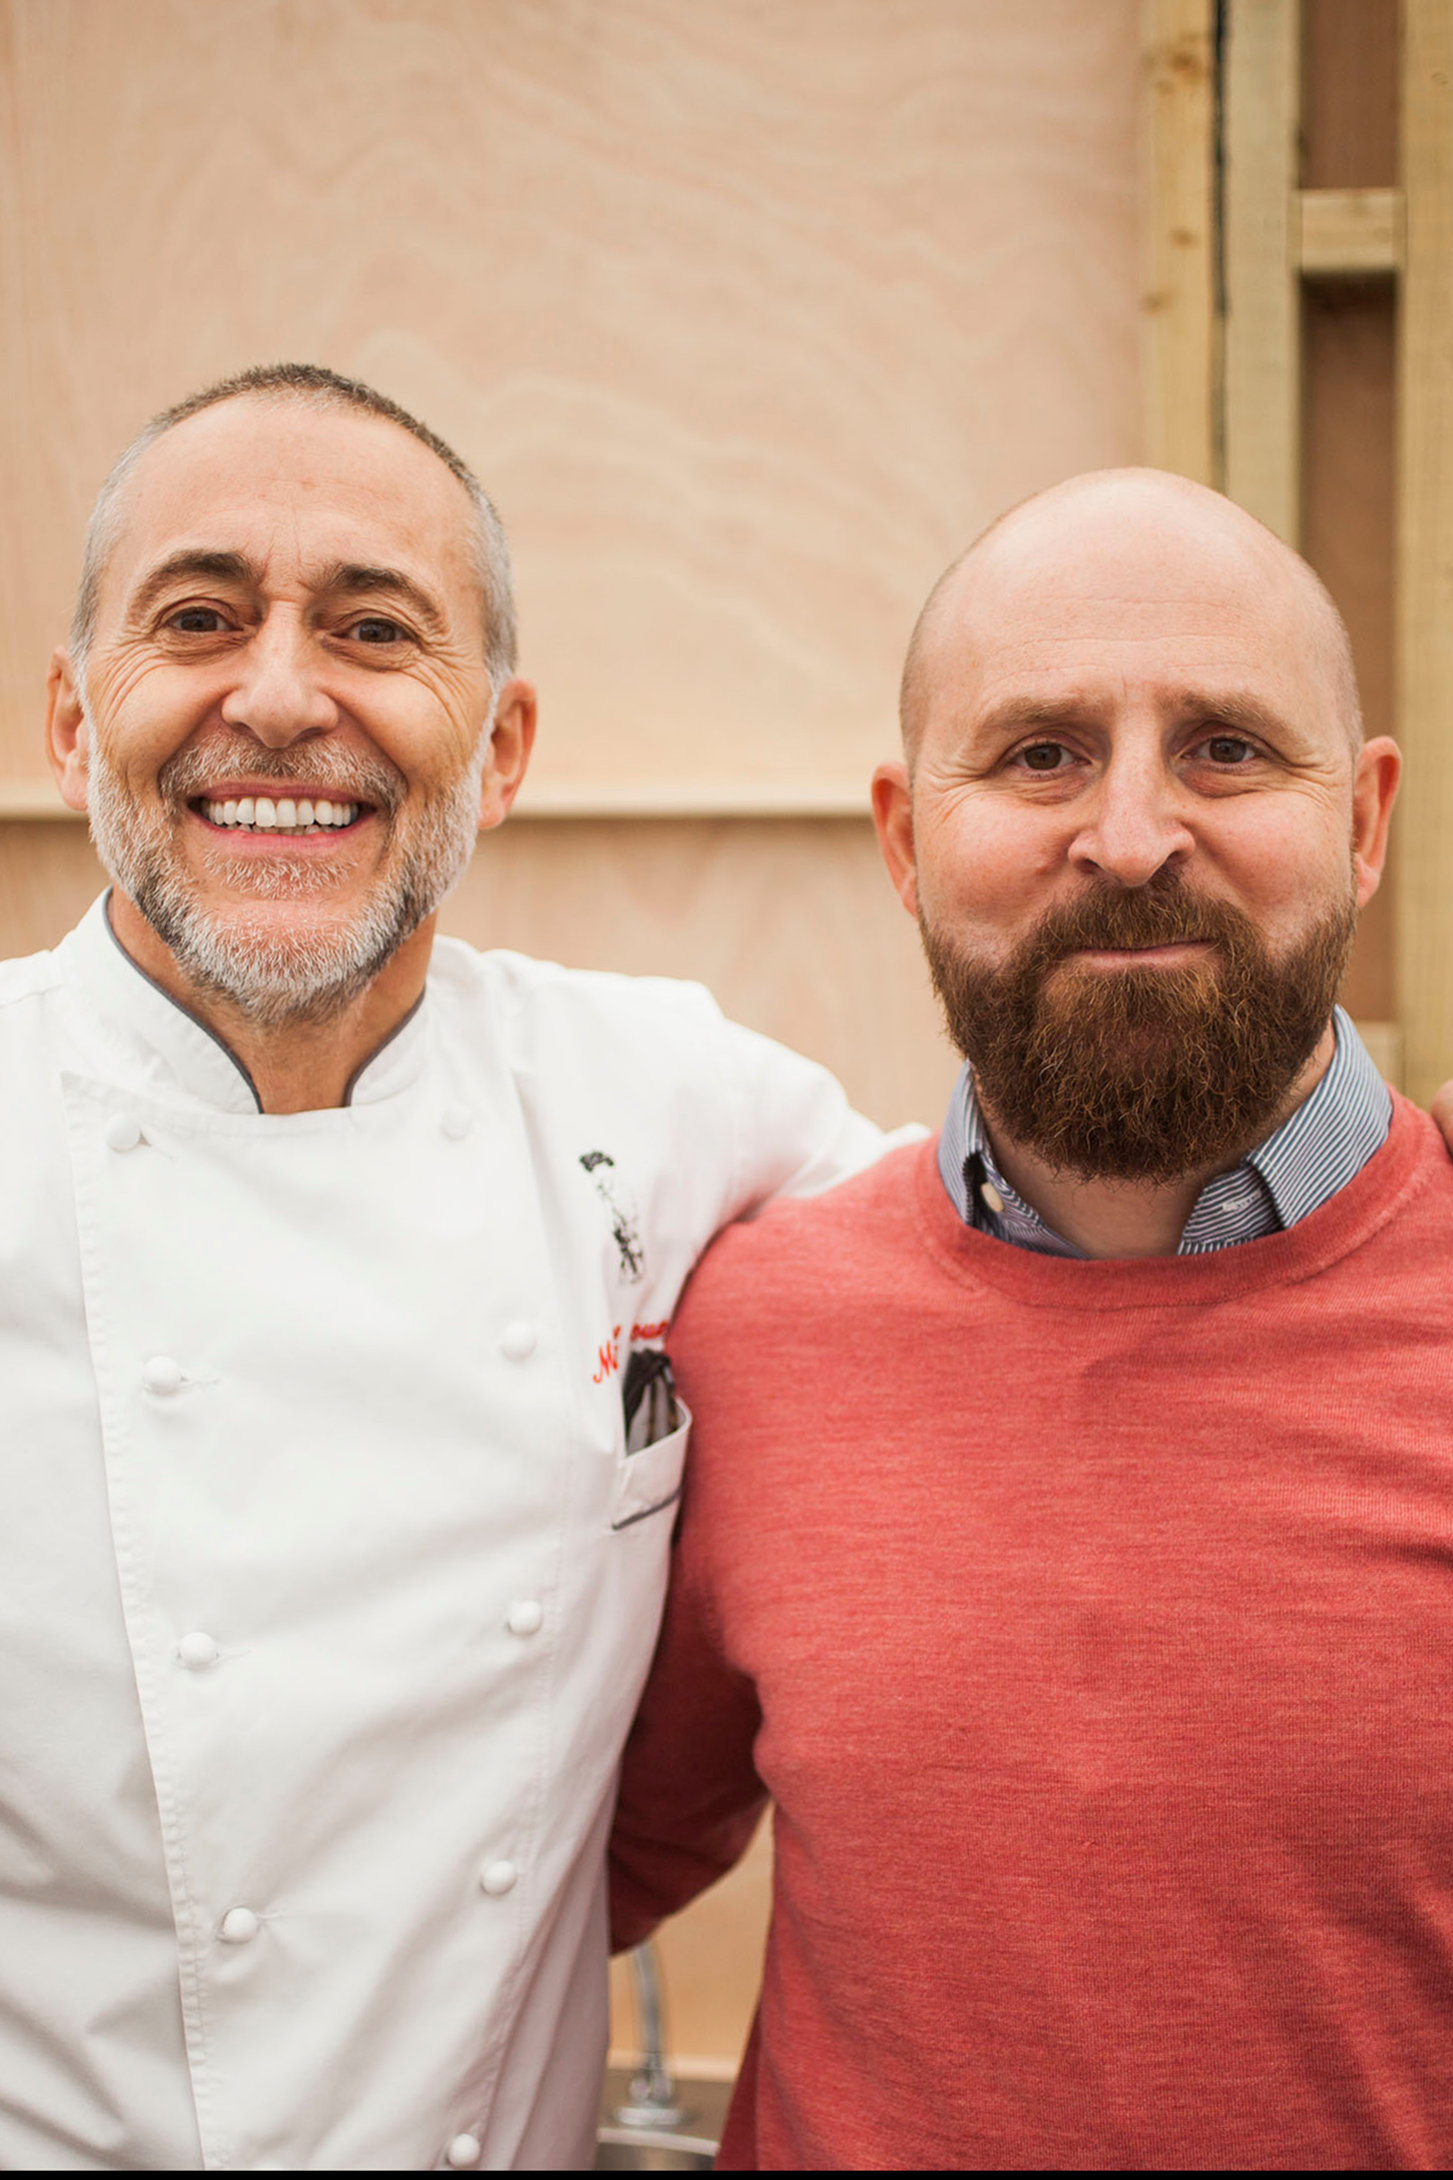 Michel Roux Jnr and Barney Desmazery